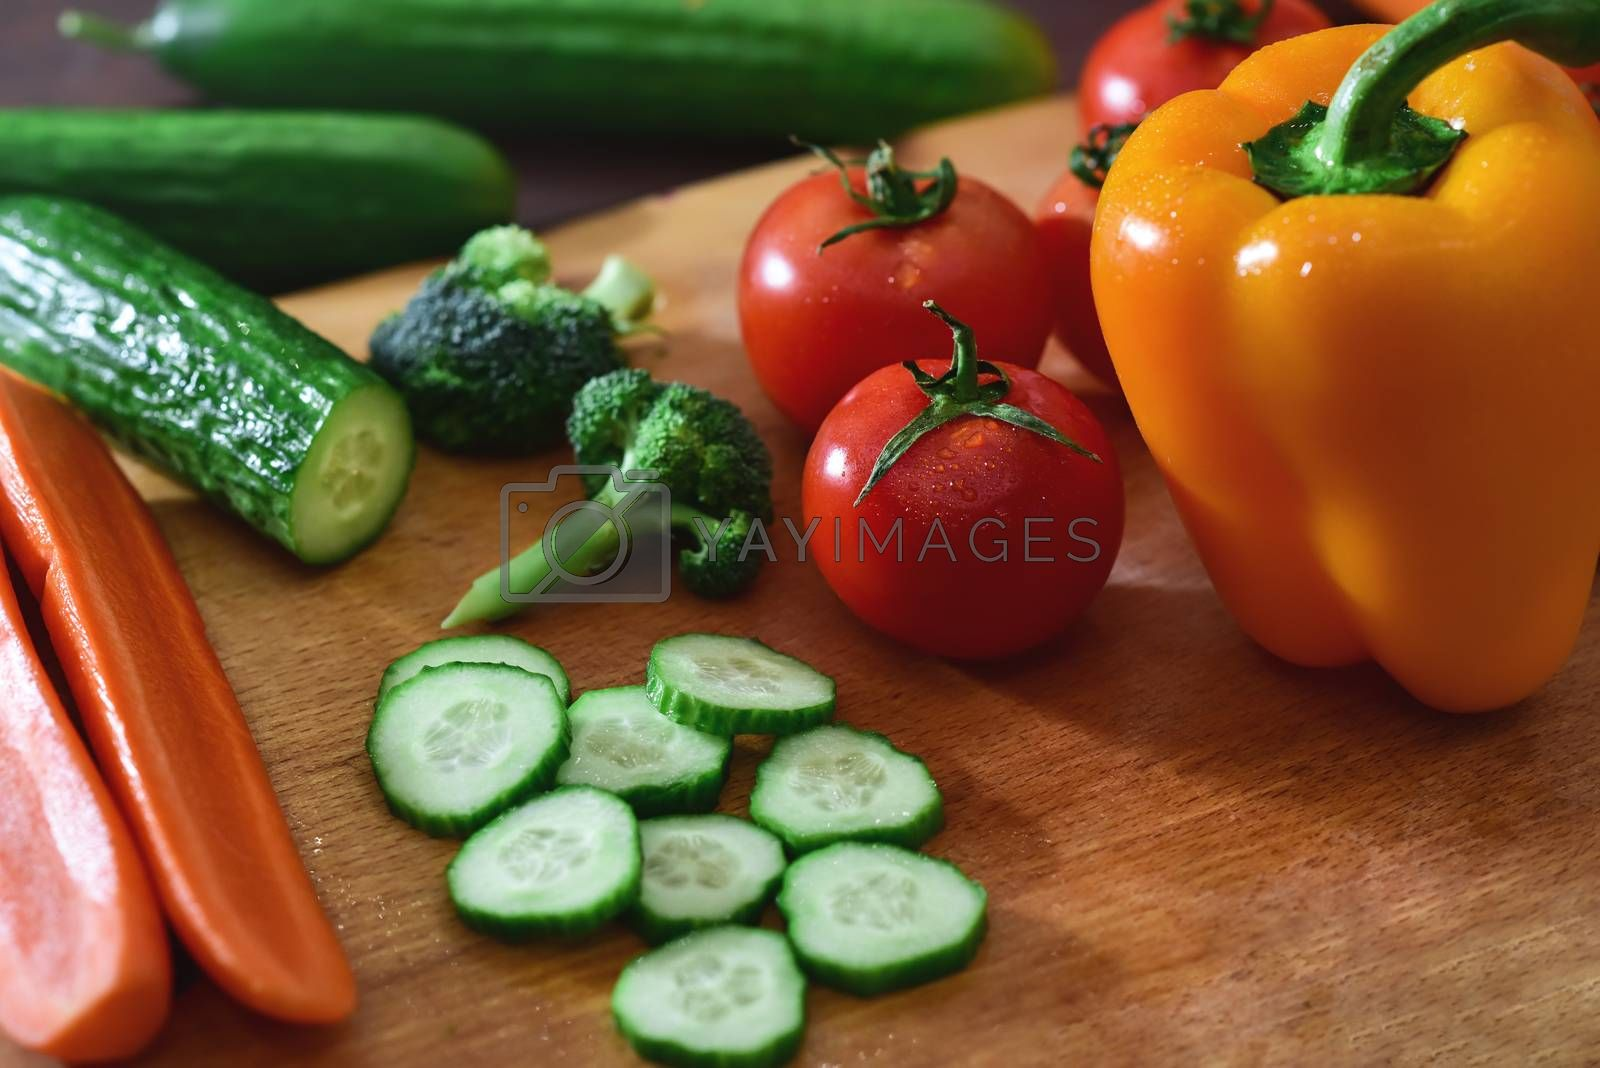 Nature Gifts. Benefits for the body. Fresh sliced vegetables lie on a wooden table. Tomatoes .cucumbers. broccoli. pepper. carrots.